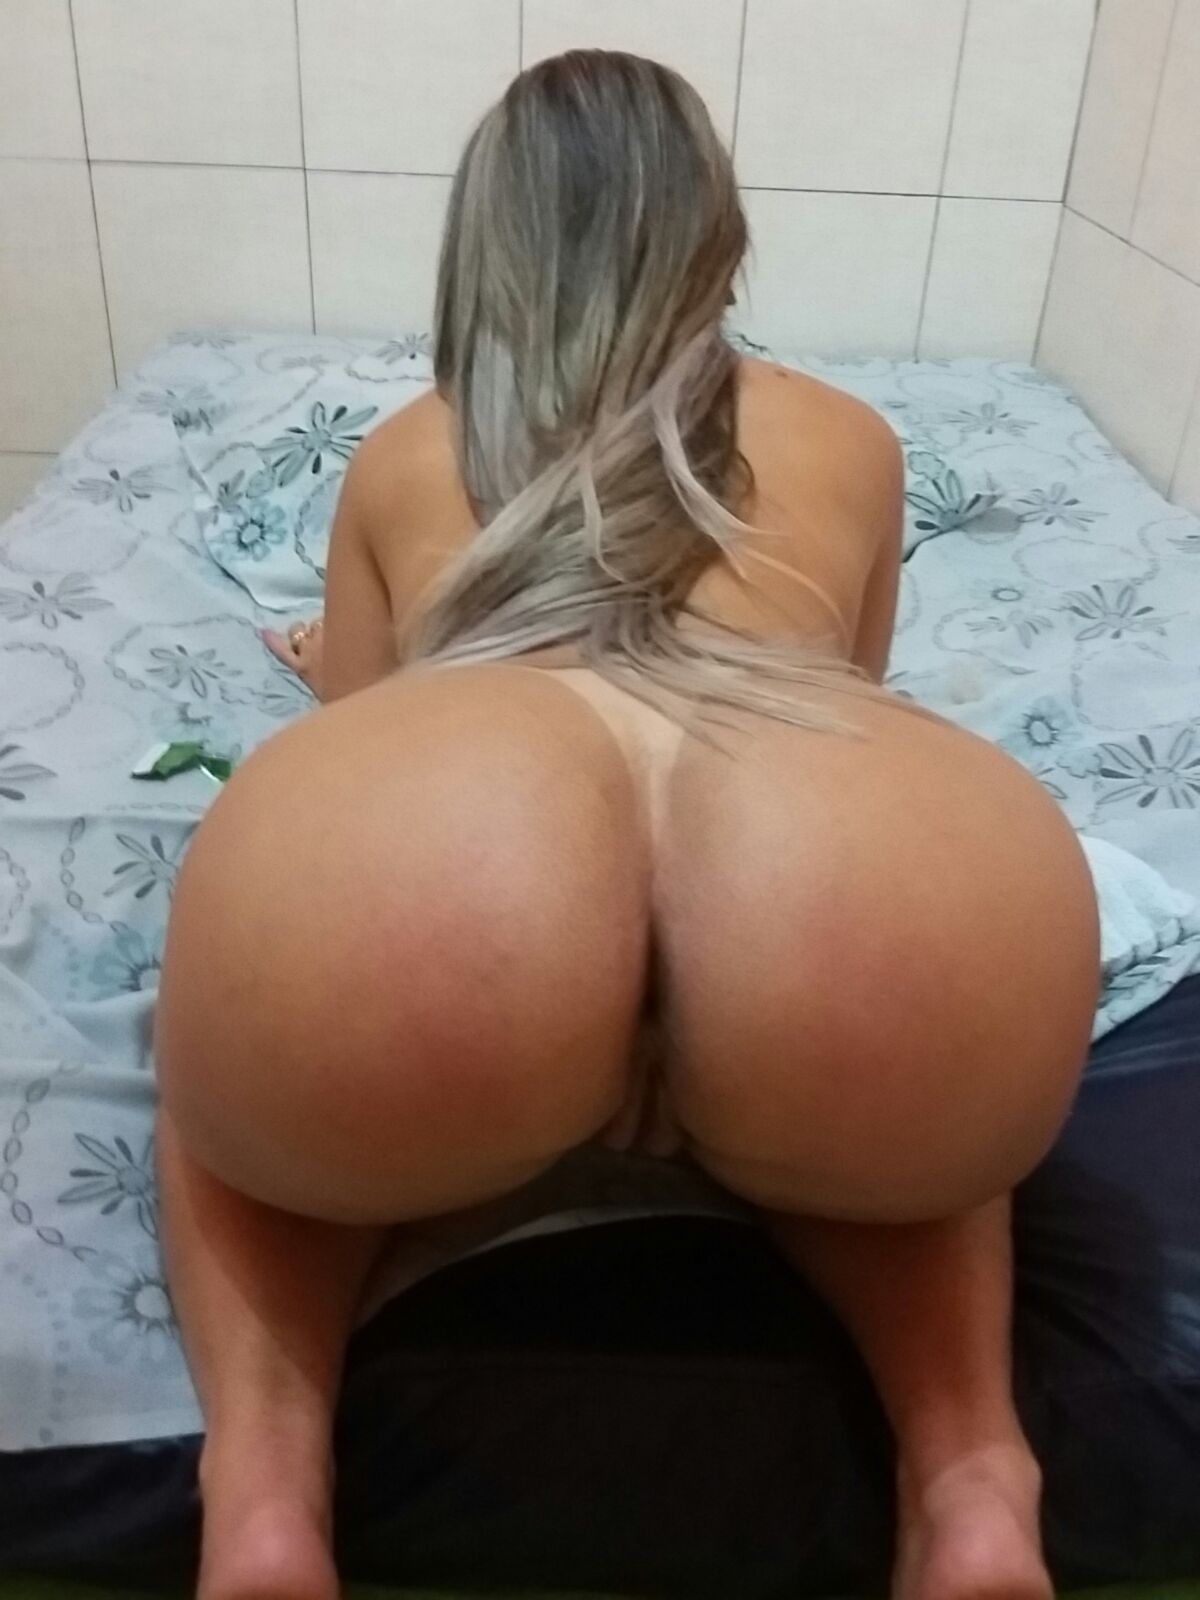 Good porno gratis rabuda hard